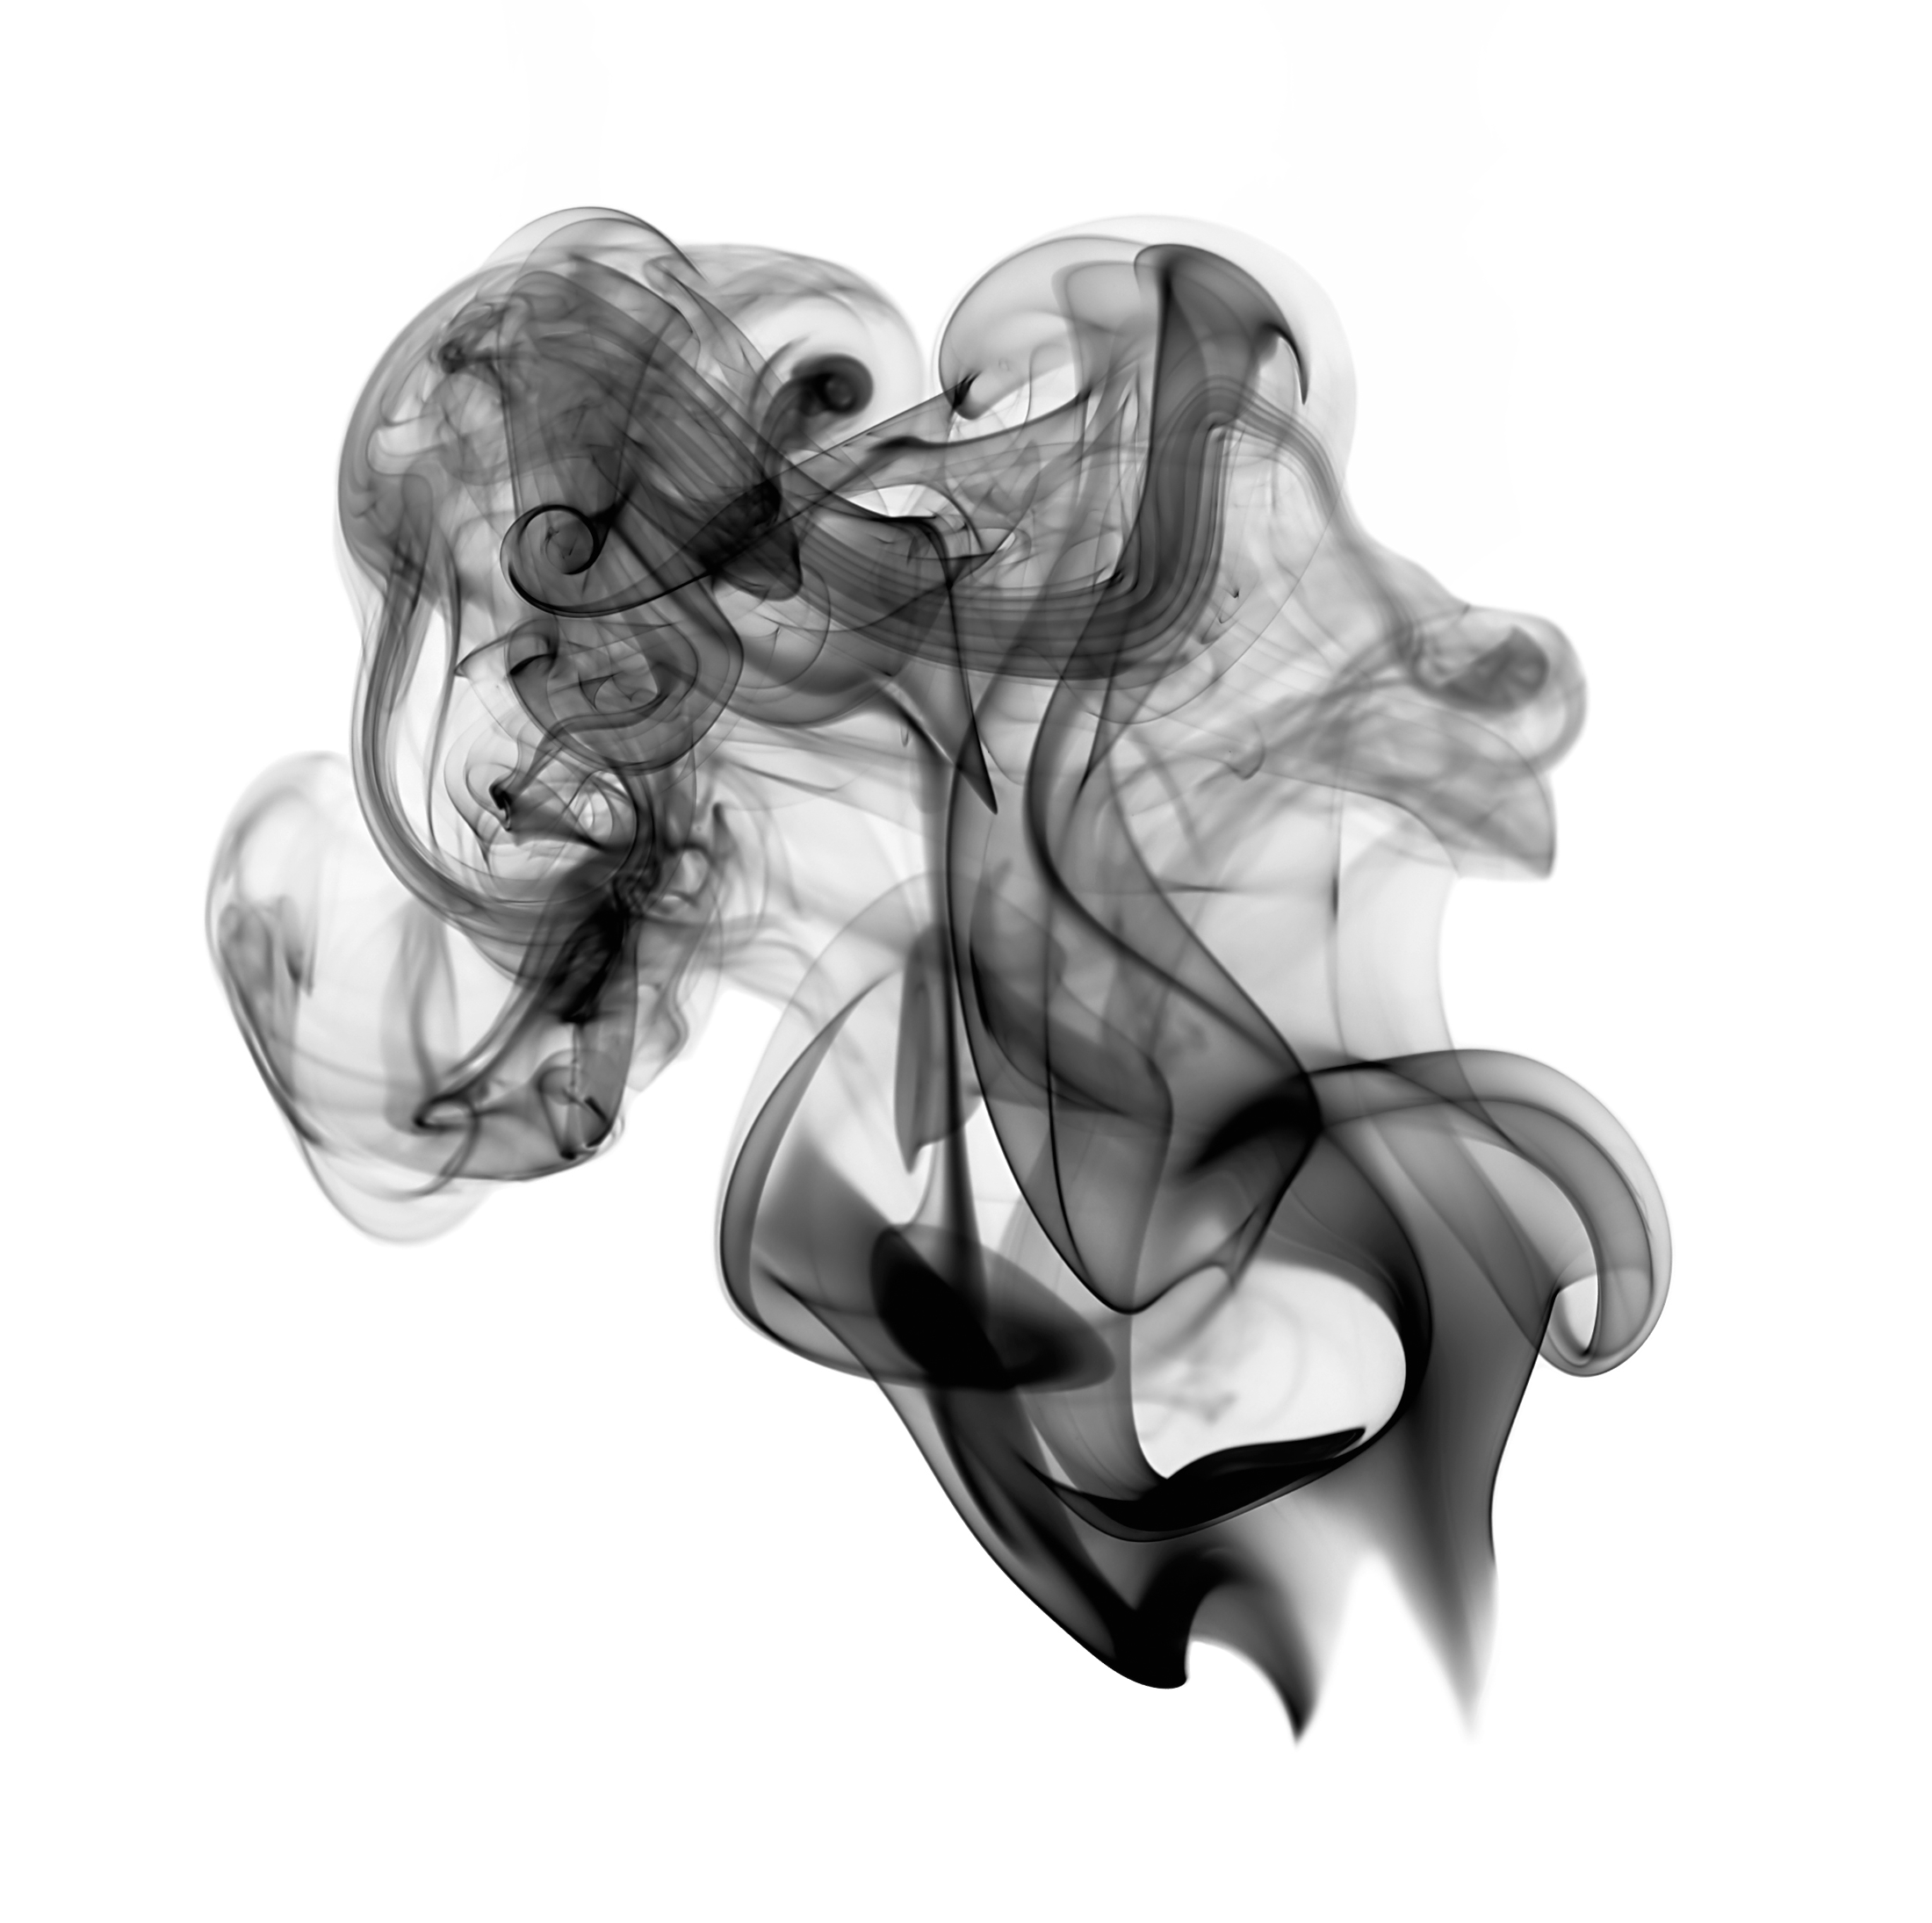 Black Smoke PNG Transparent Image - Smoke PNG